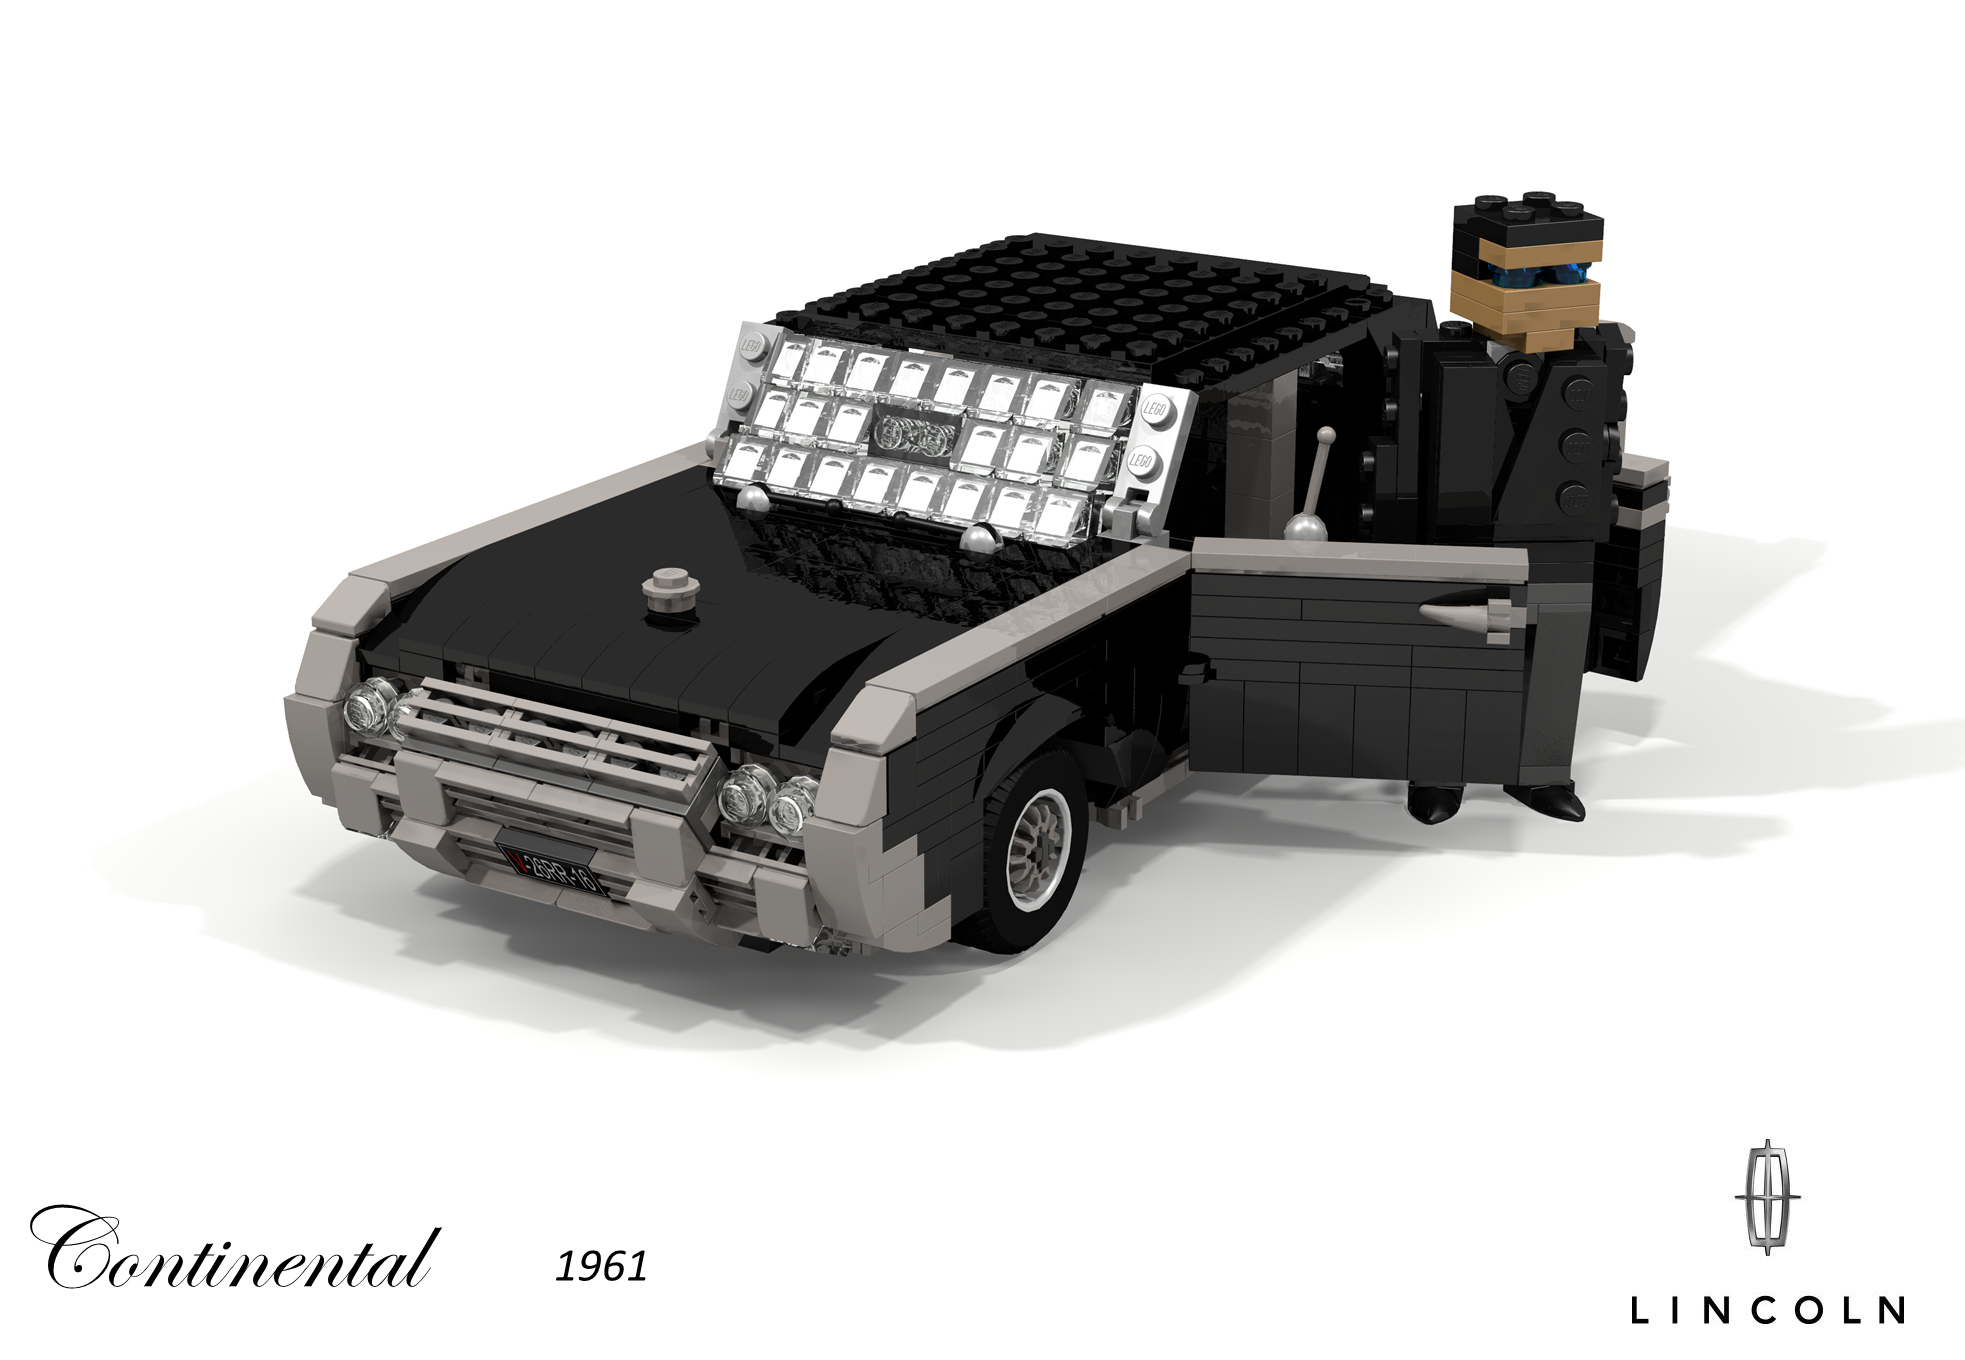 lincoln_1961_continental_11.png